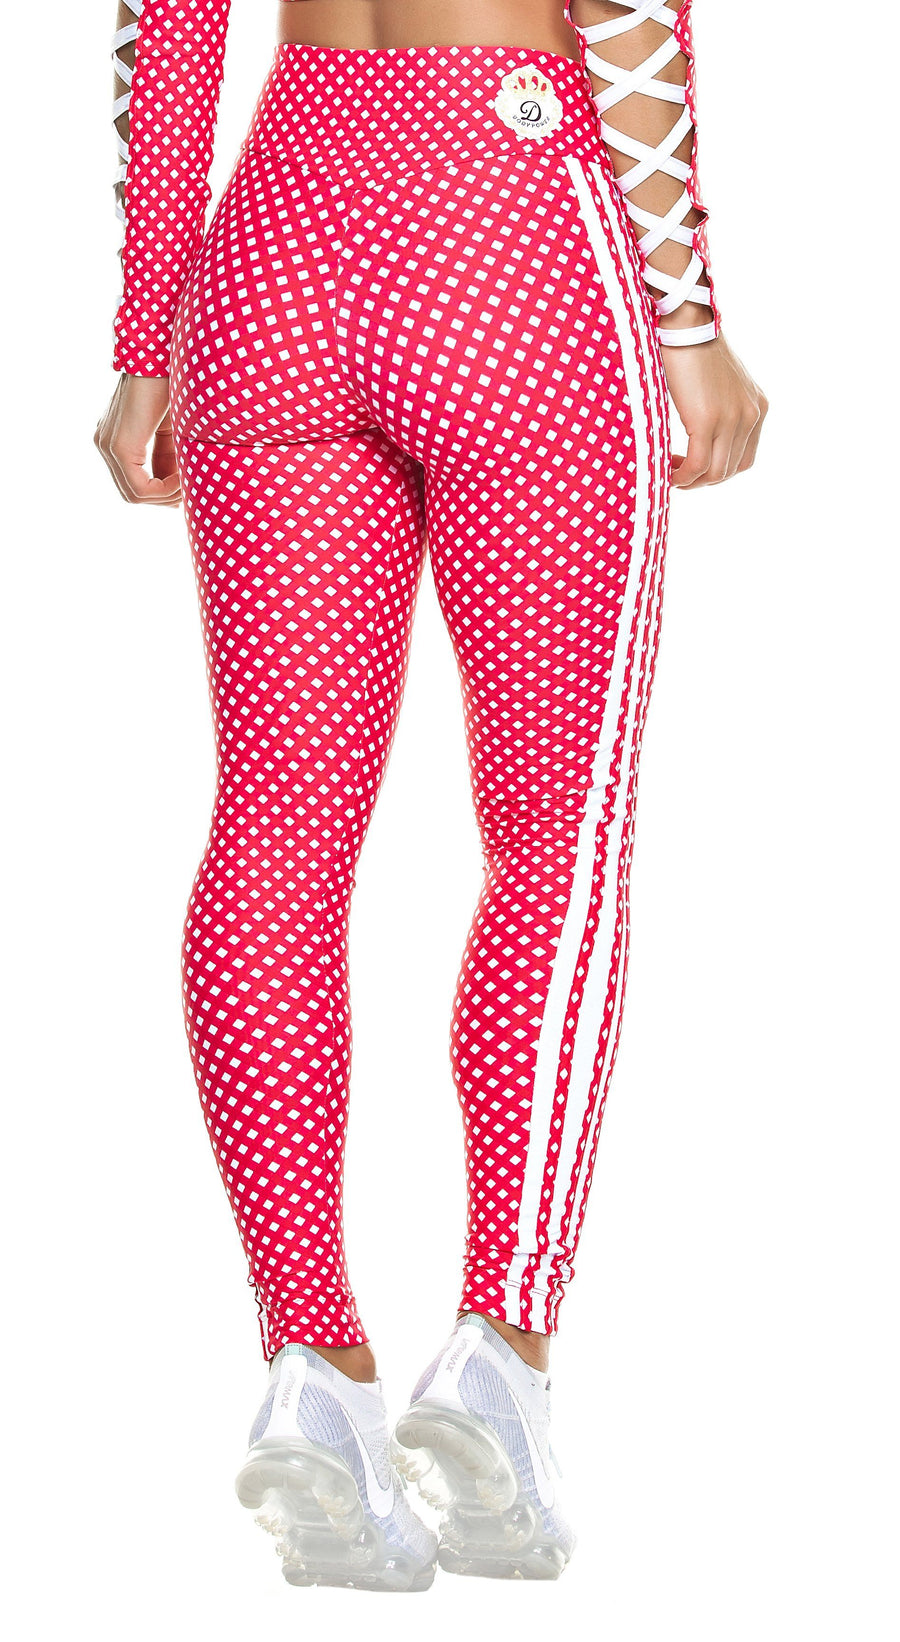 Workout Legging -  High Waist Stripes & Plaid Red/White